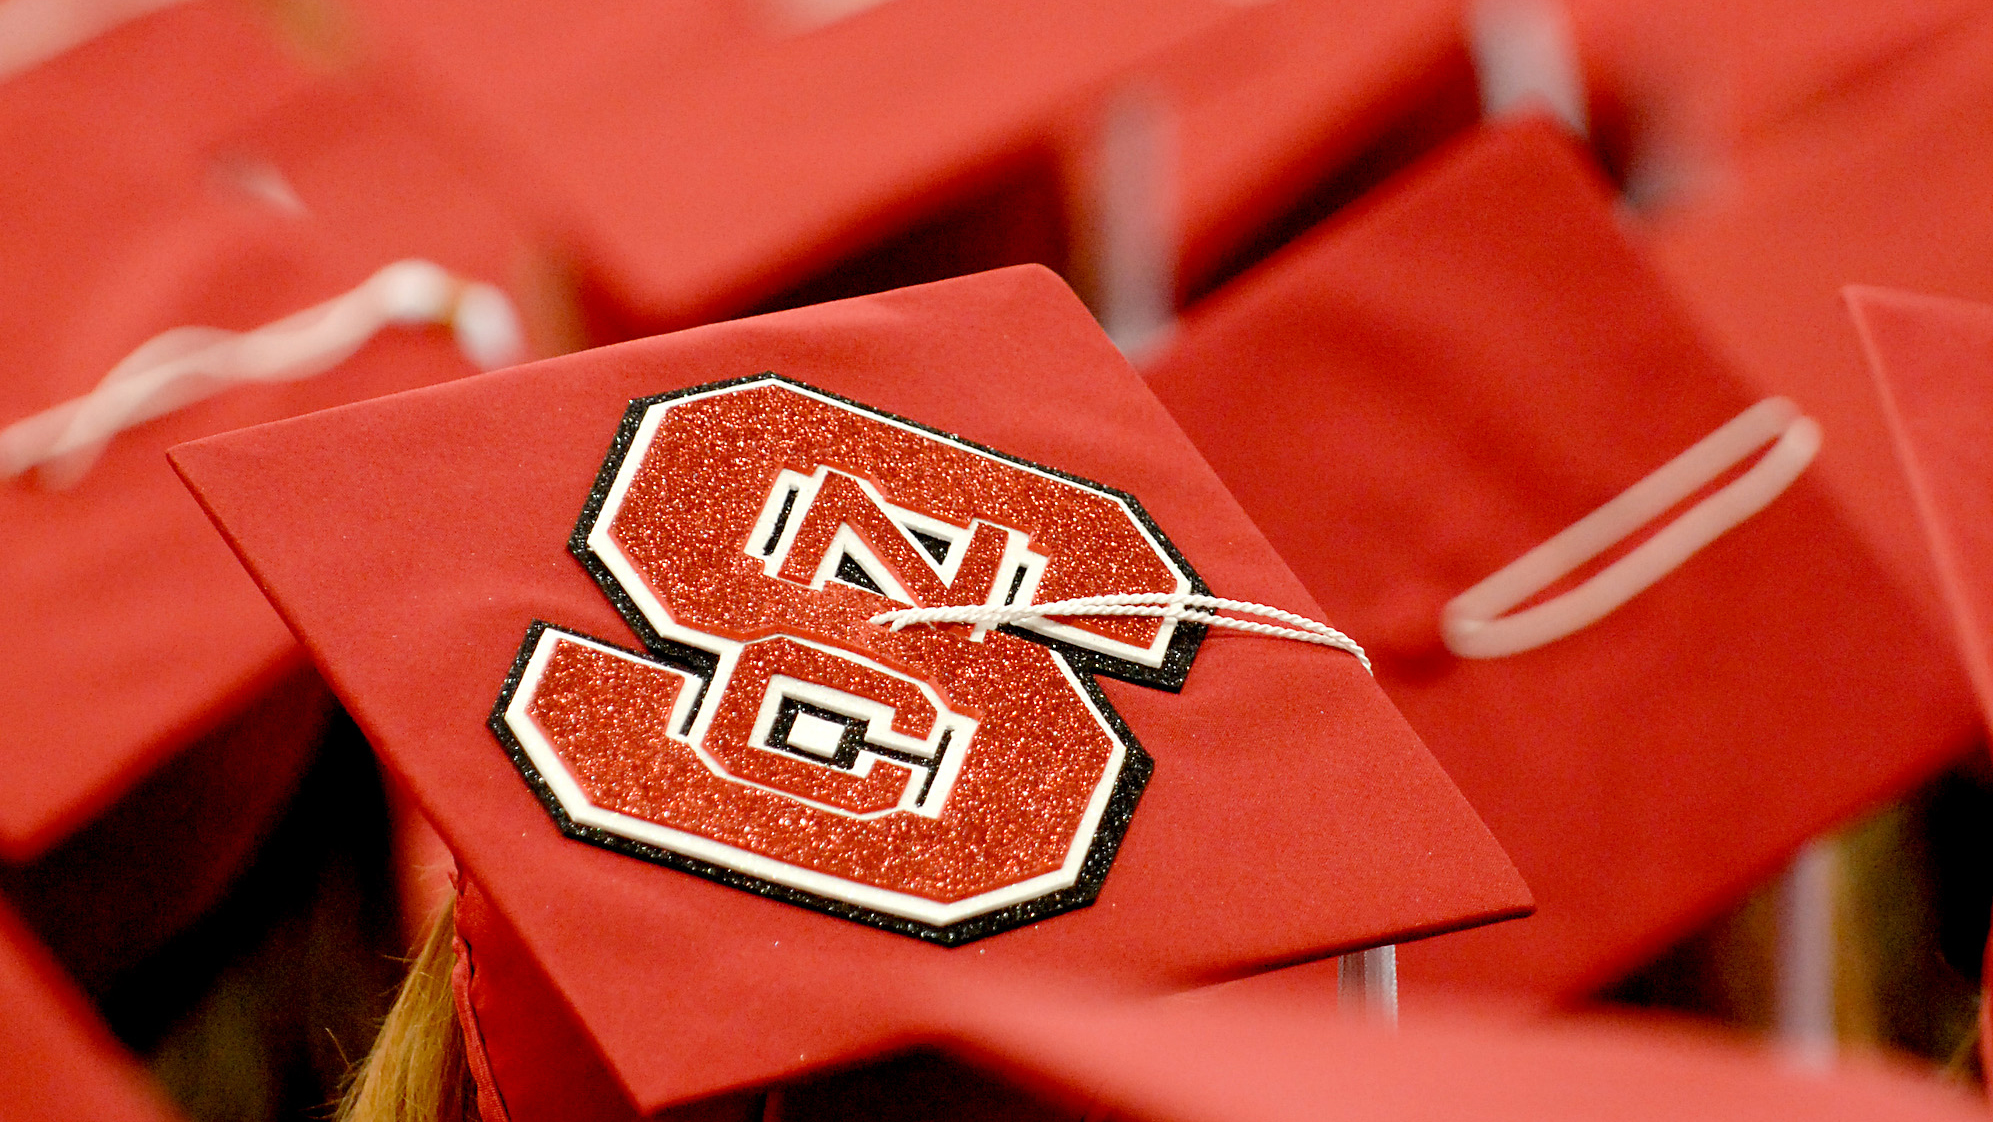 Shot of graduation caps, including one with NC State logo on the top